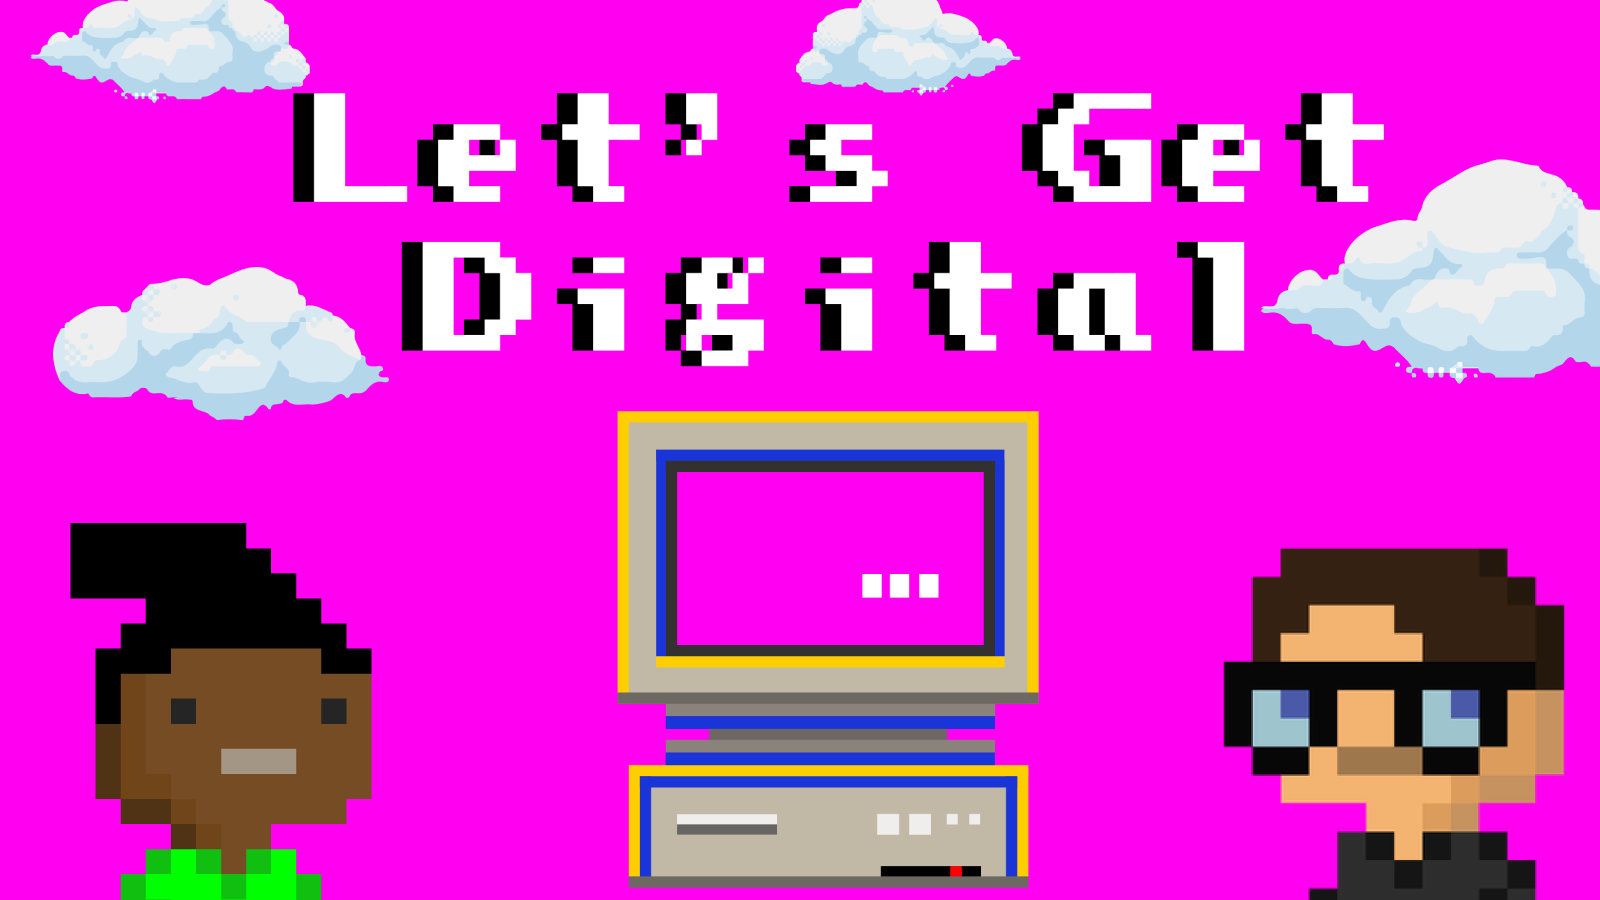 Illustration of two people, a computer, and clouds on a magenta background.